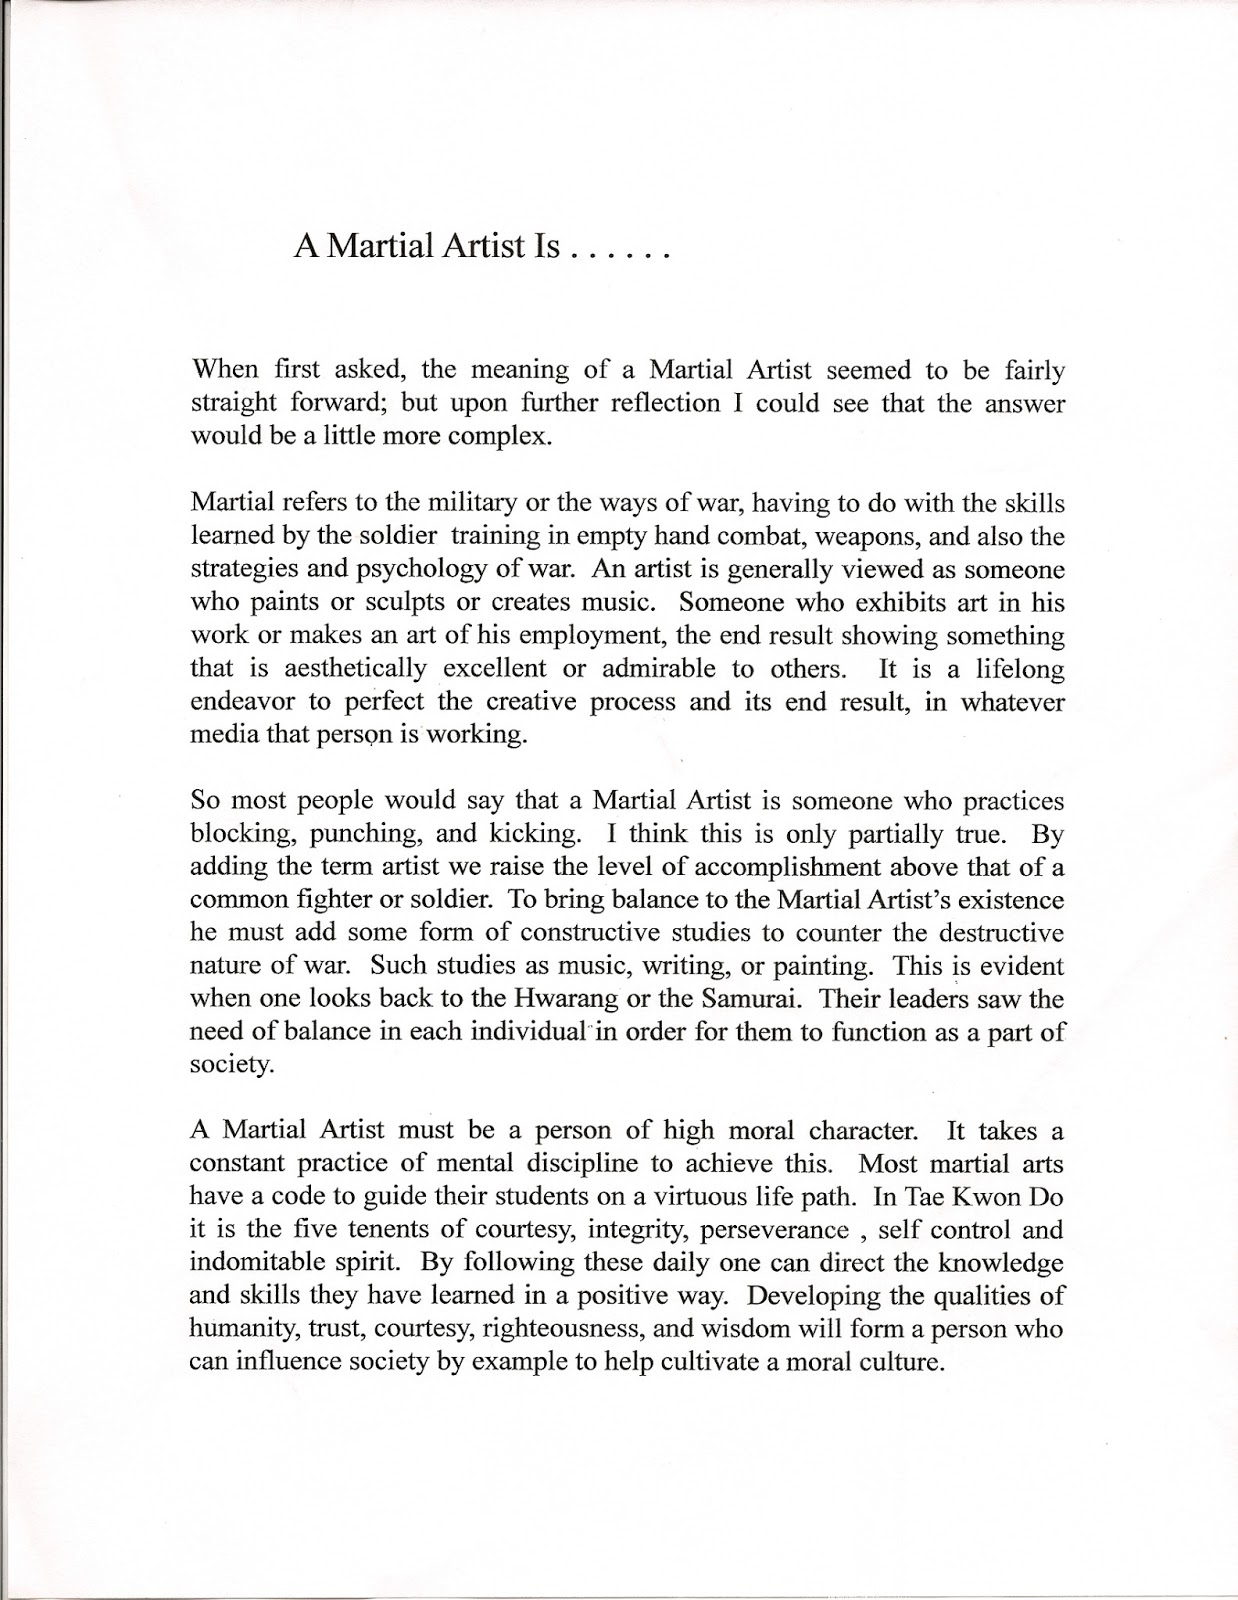 Same Sex Marriage Persuasive Essay The Souls Of Black Folk Essays Essay Share Gxart Orgessay Share Hugh  Gallagher Essay Hugh Gallagher College Essay Gxart Hugh Essay Share Gxart  Orgessay  Richard Rodriguez Essays also Hiroshima Essays The Souls Of Black Folk Essays Hugh Gallagher Essay Hugh Gallagher  Legalization Of Marijuana Persuasive Essay